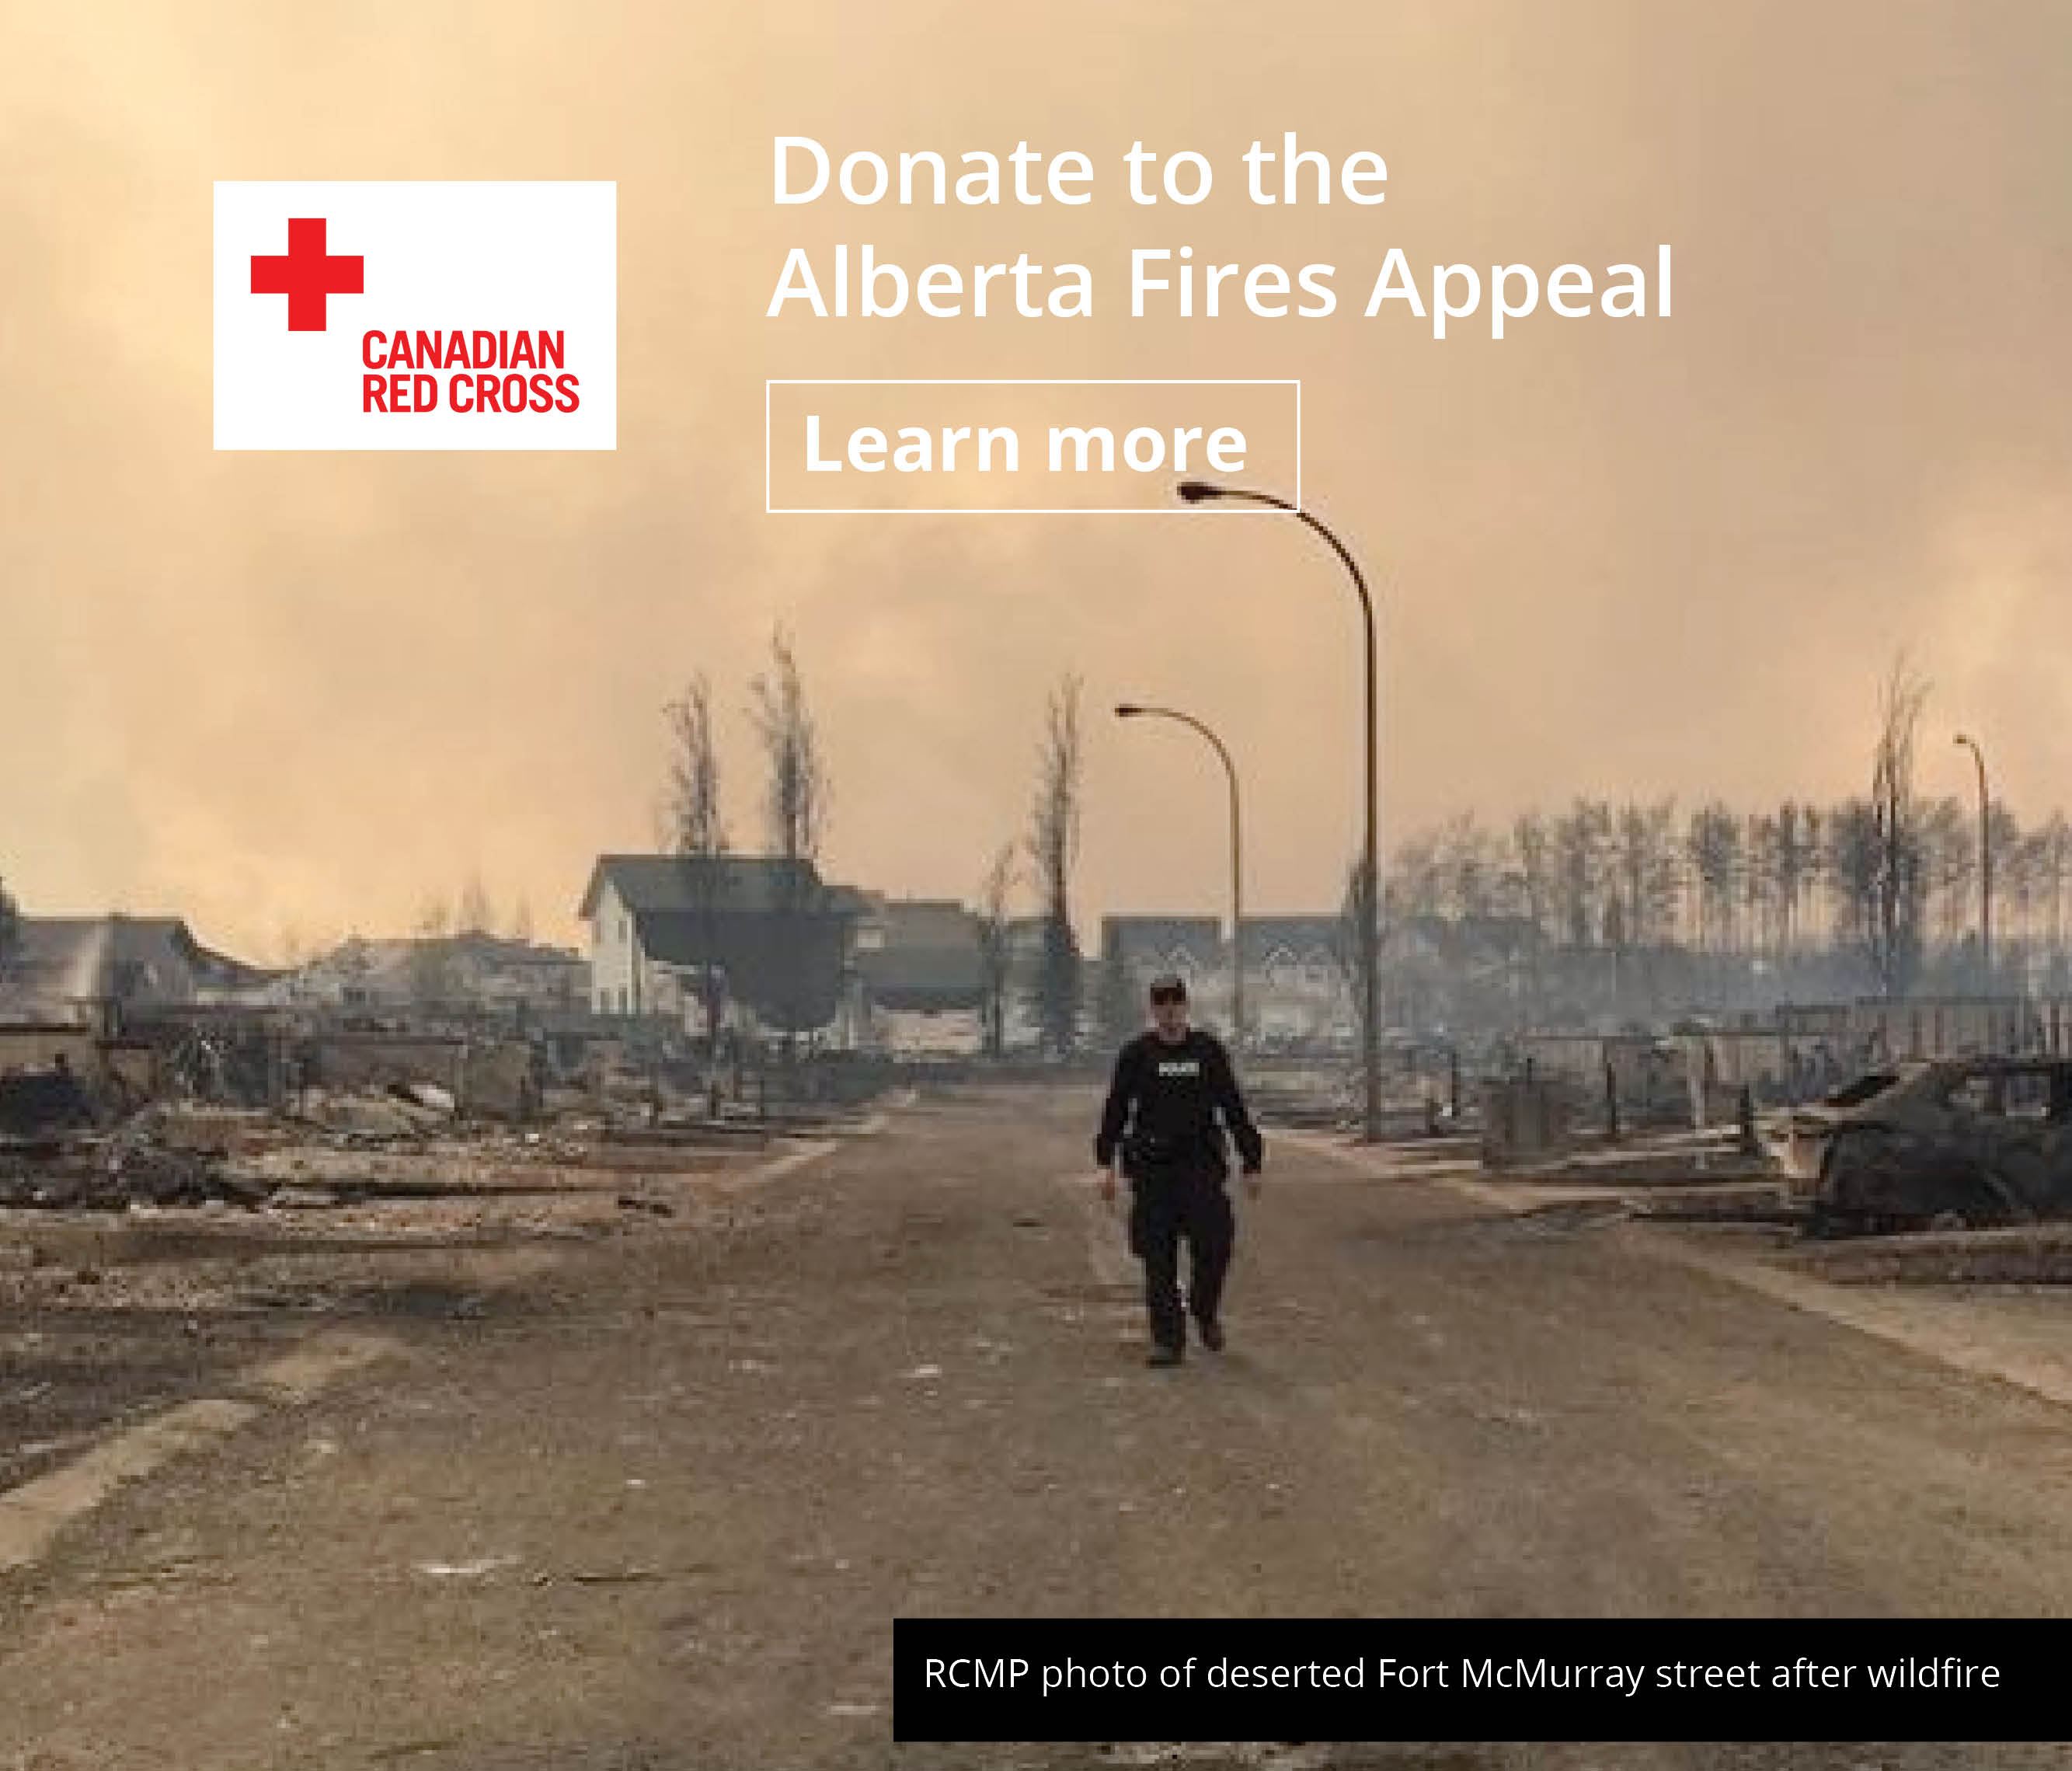 Donate to the Alberta Fires Appeal